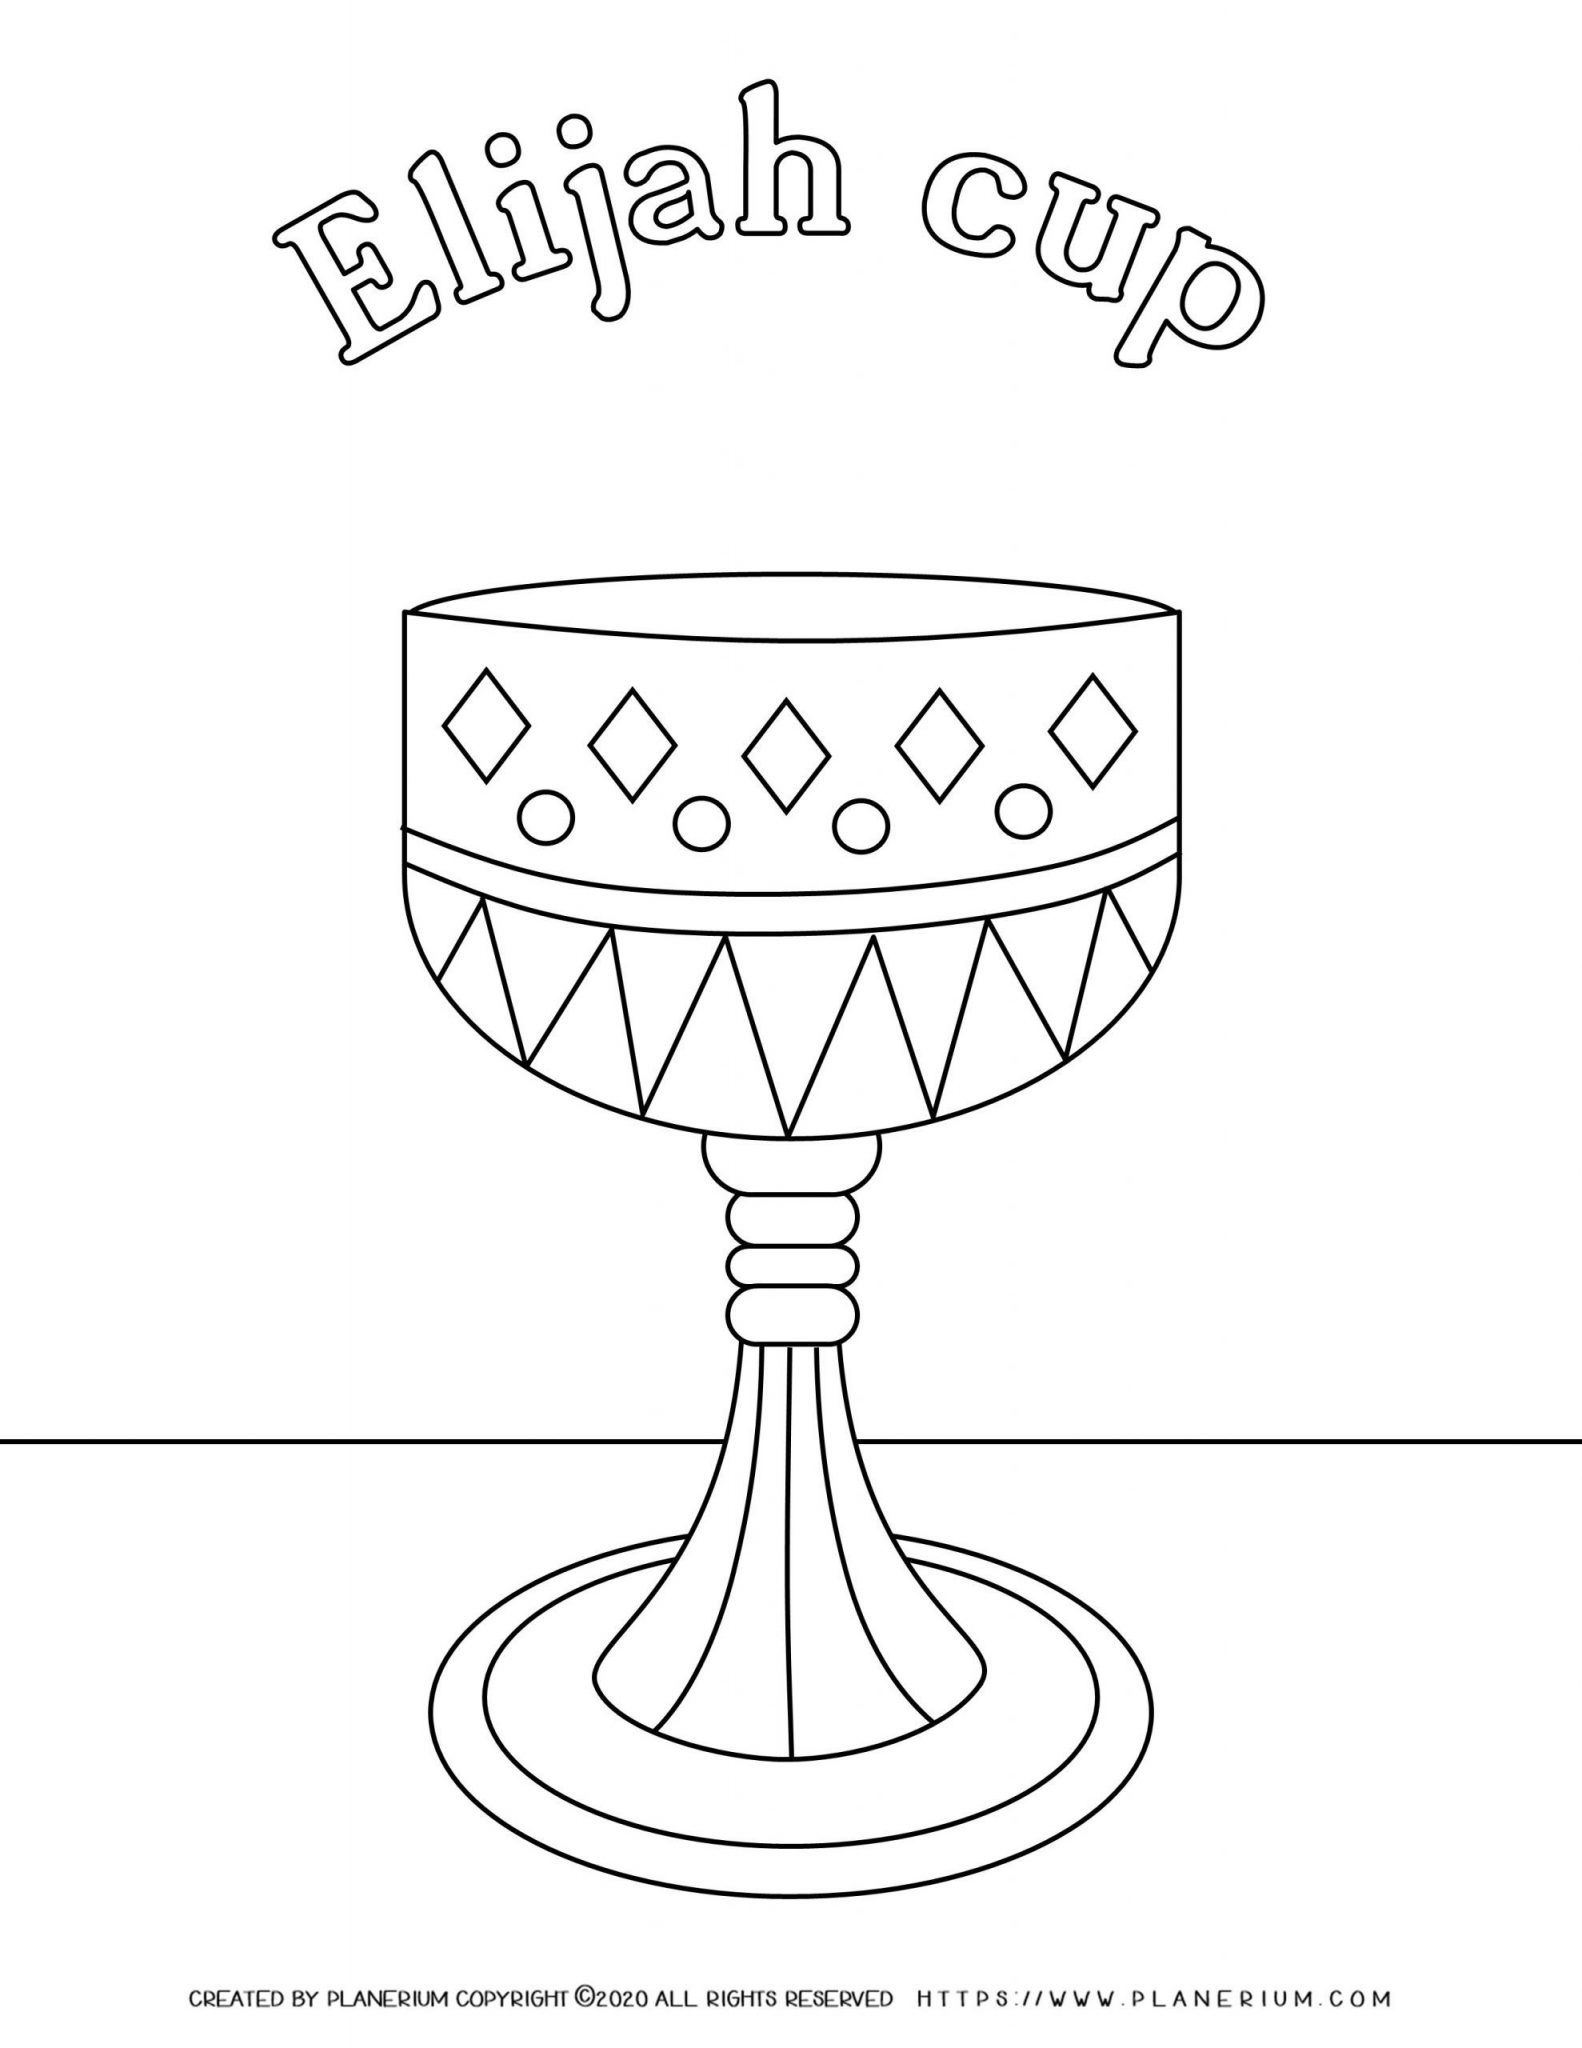 Best Printables For Passover 2021 Planerium In 2021 Coloring Pages Passover Crafts Passover Printables [ 2048 x 1582 Pixel ]